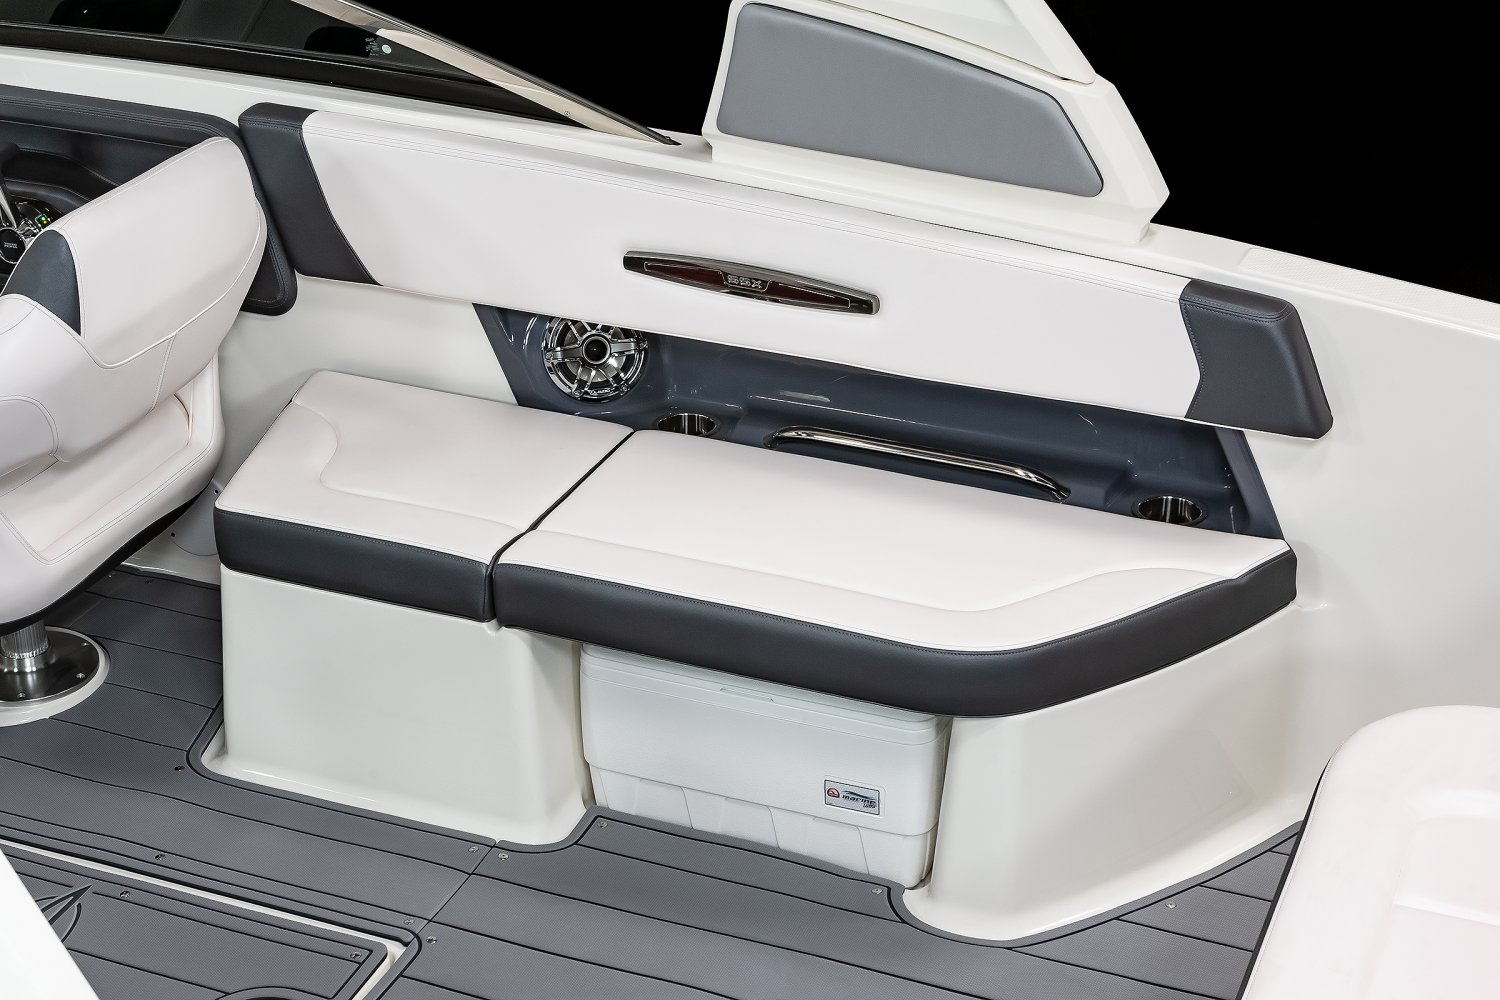 Image of a Black Edition 2022 307   Chaparral Boats. Our track record speaks for itself. Seeing Chaparral on top when it comes to performance, styling, value and innovation should come as no surprise... we've won more than 30 awards for product excellence, a feat few can claim.